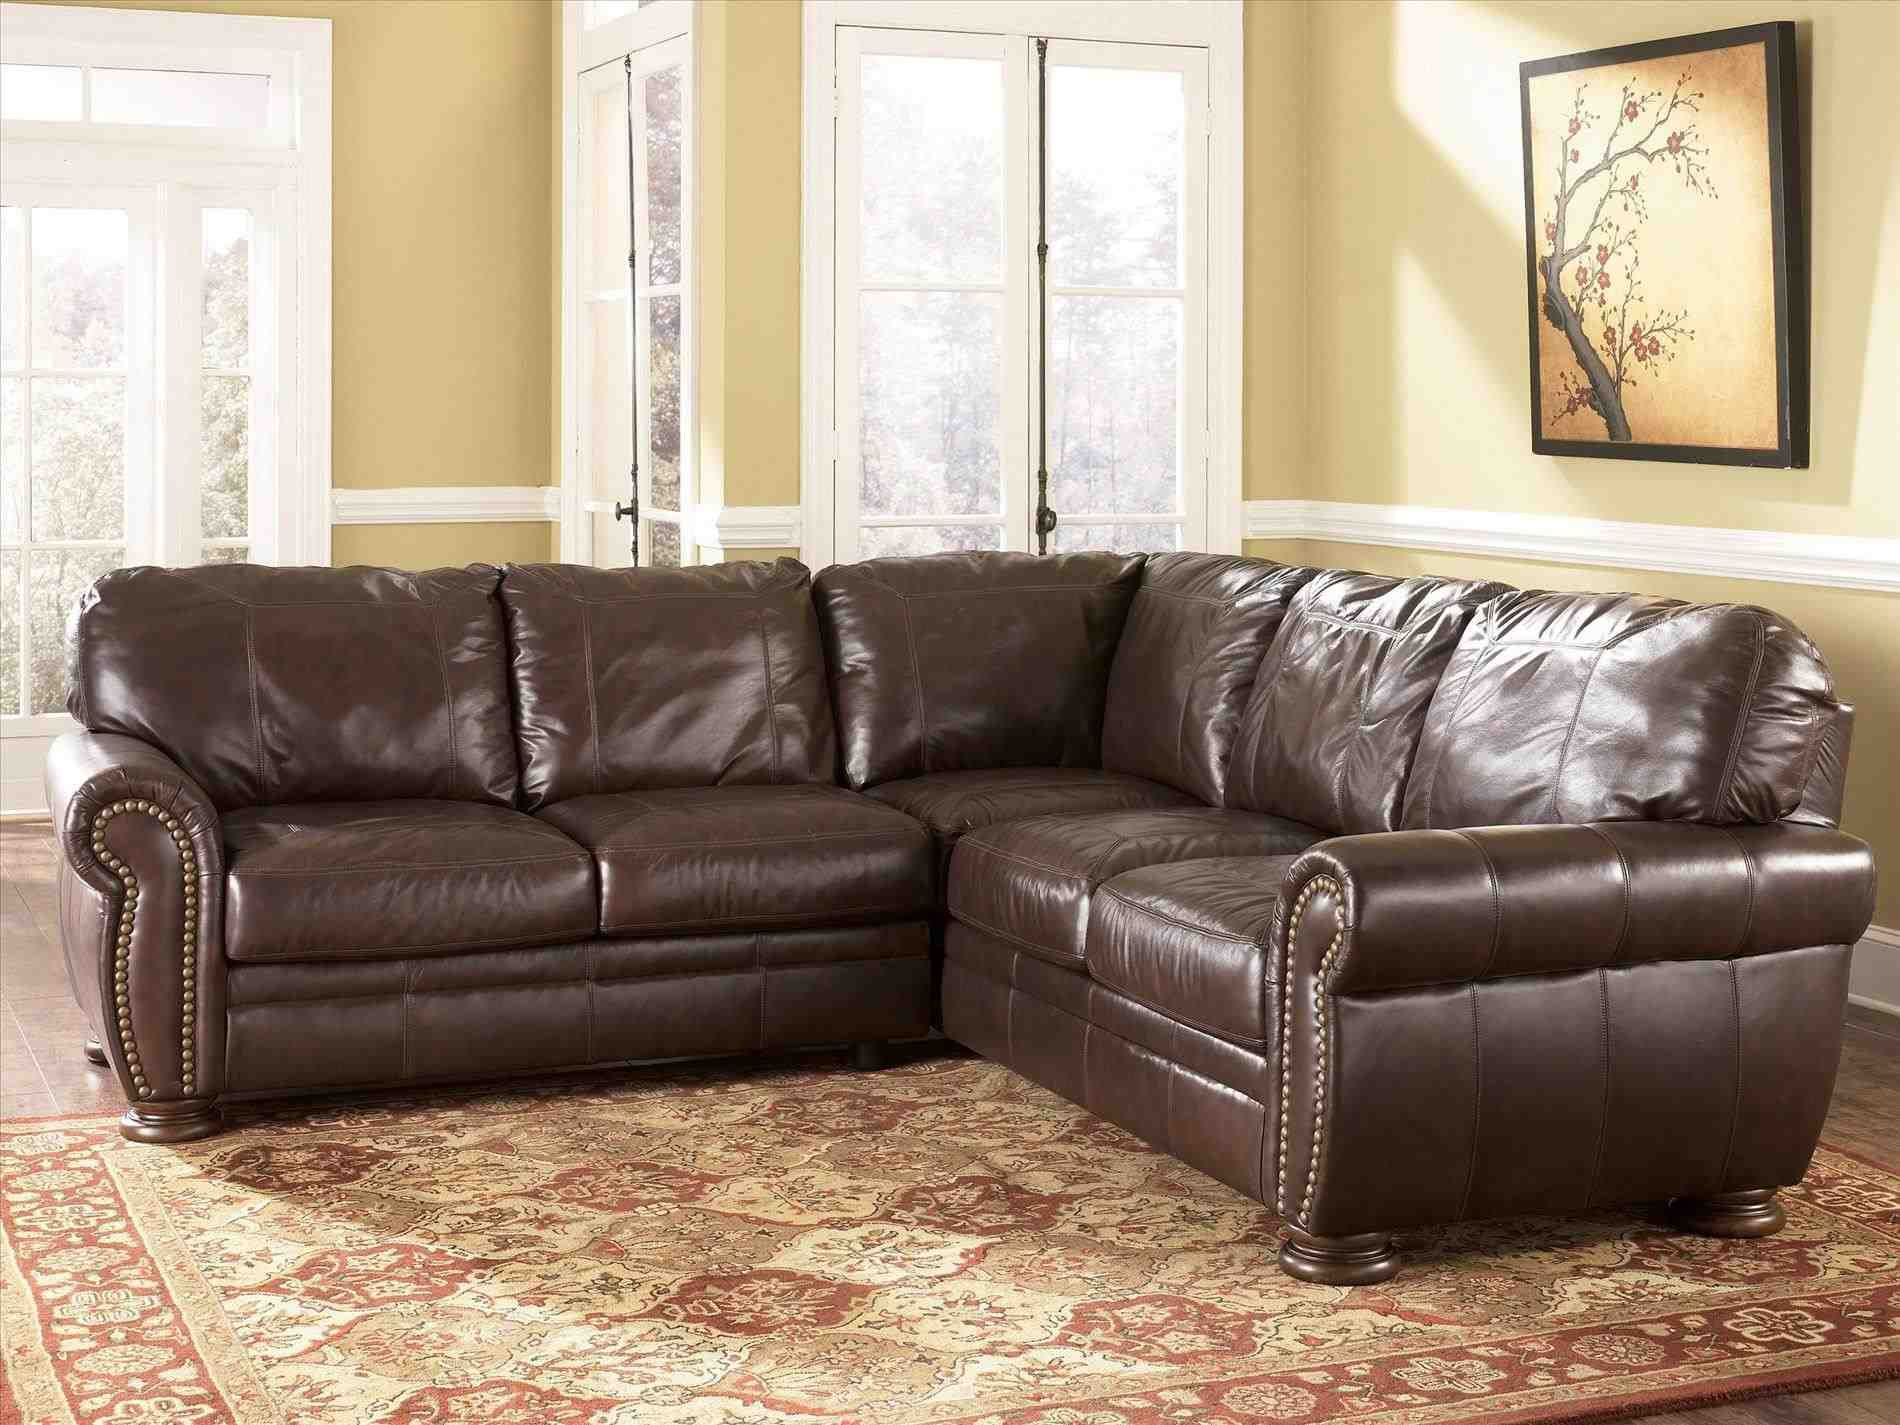 Cheap Sofa Gumtree Cheap Couches For Sale Online Furniture In Durban Affordable Johannesburg Fu Ashley Furniture Sectional Affordable Couch Ashley Furniture